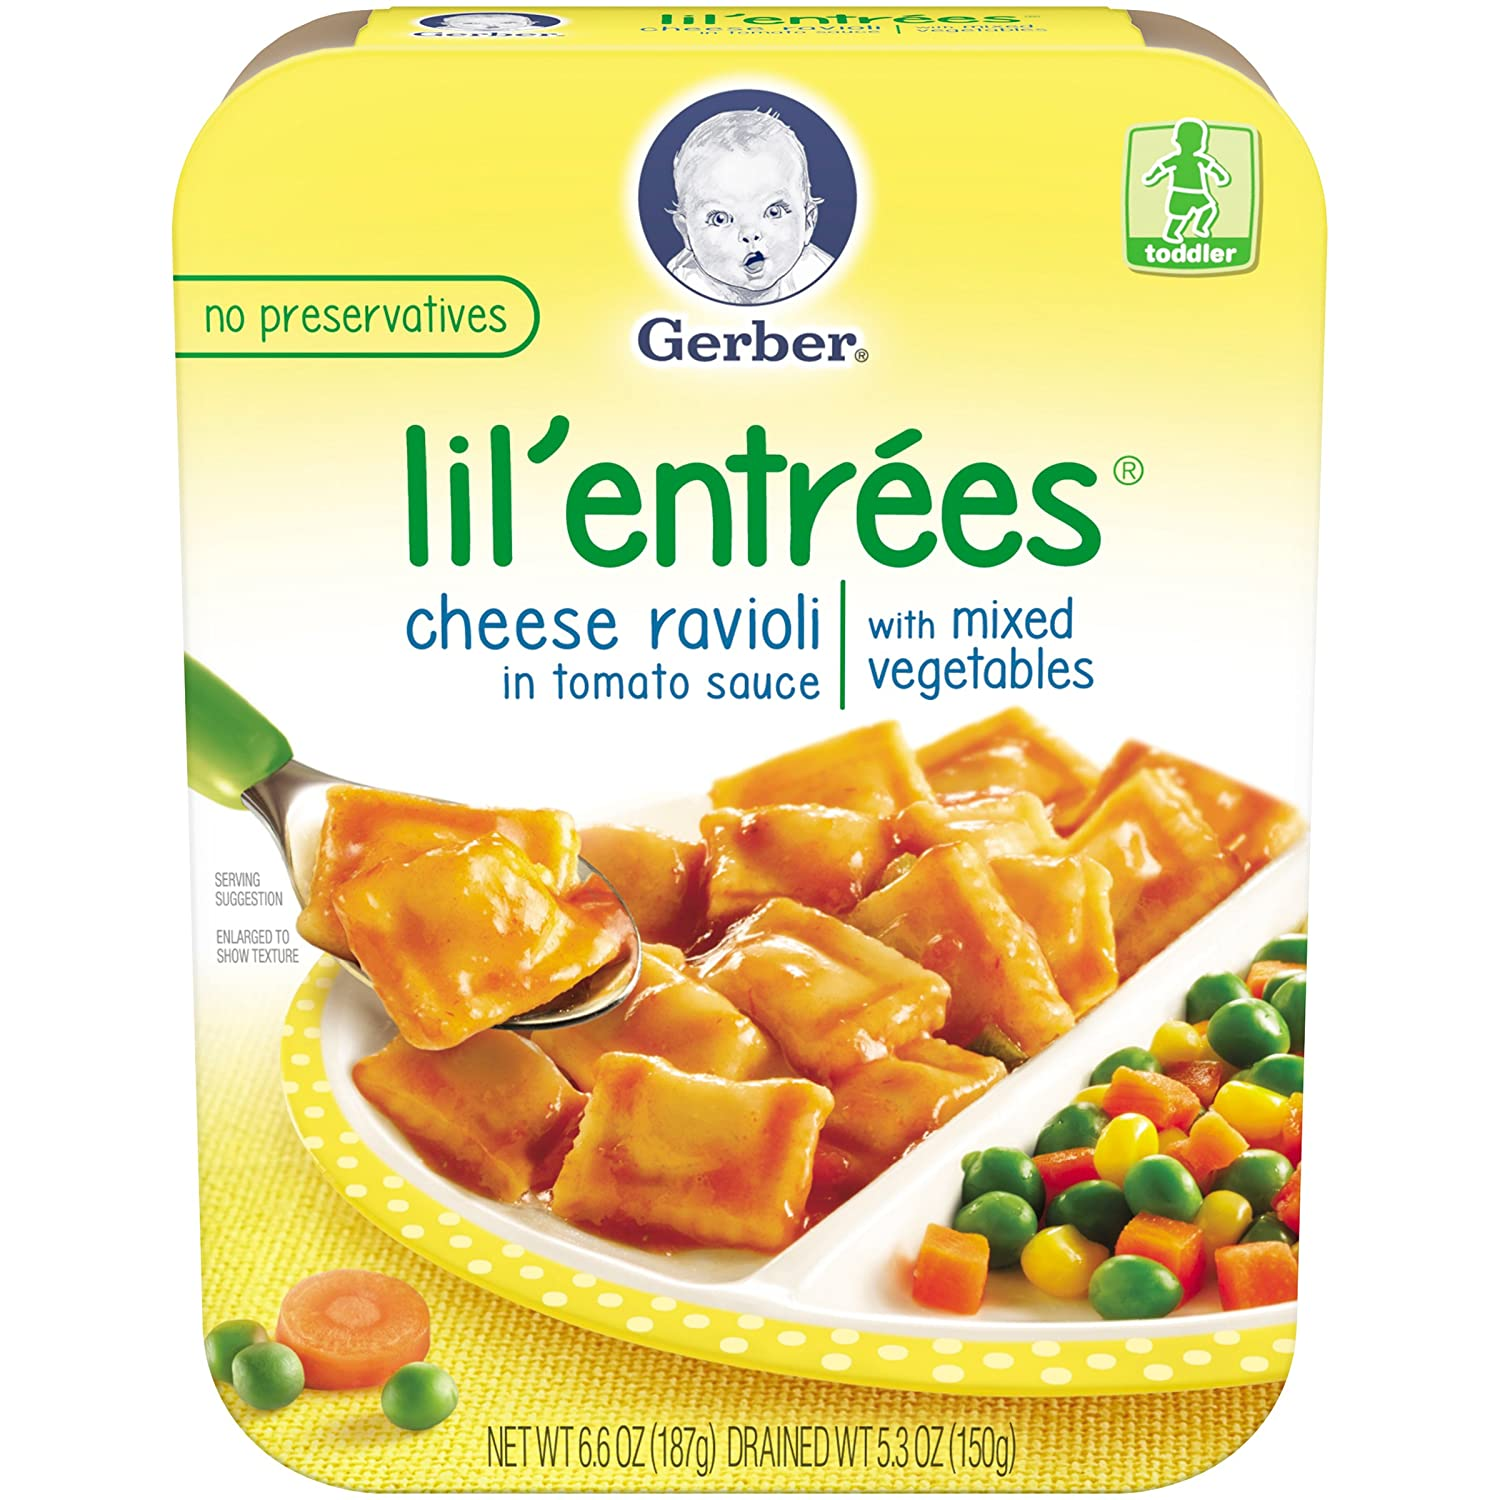 Gerber Graduates Cheese Ravioli in Tomato Sauce with Mixed Vegetables, 6.6-Ounce (Pack of 8) Ger-1191